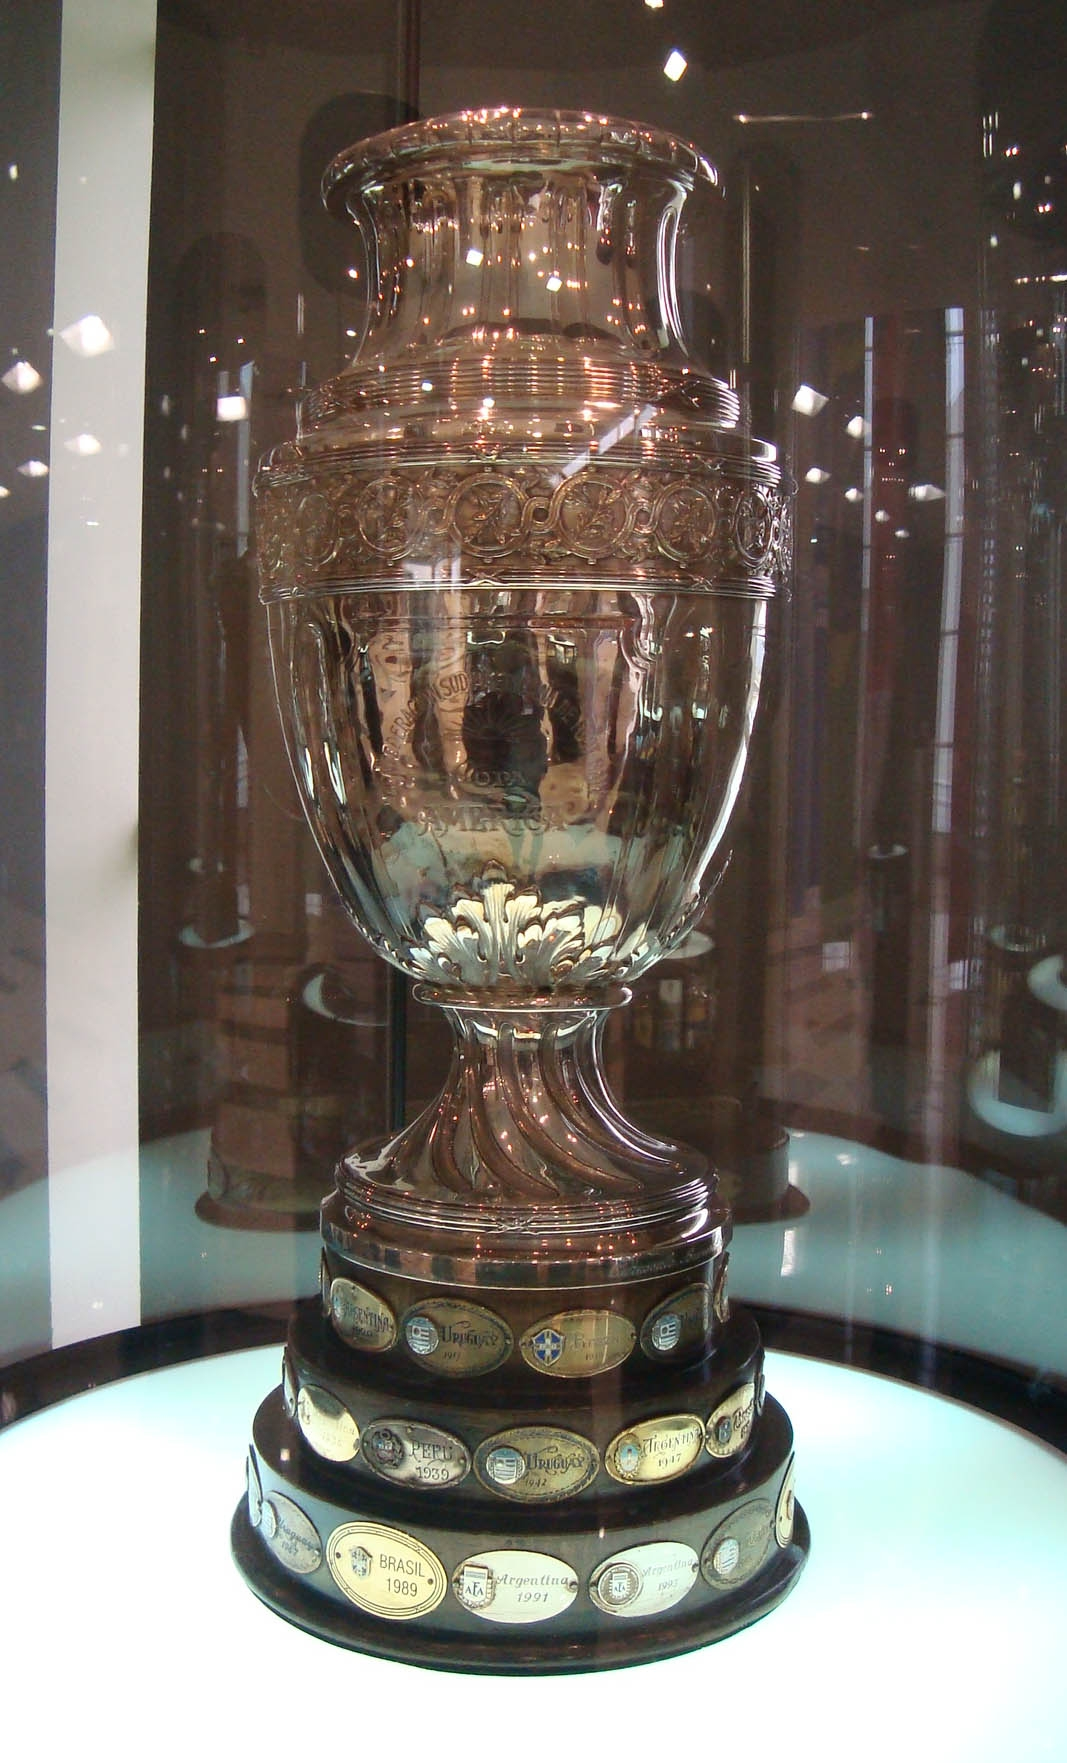 The Copa America Trophy on Display in a Glass Case